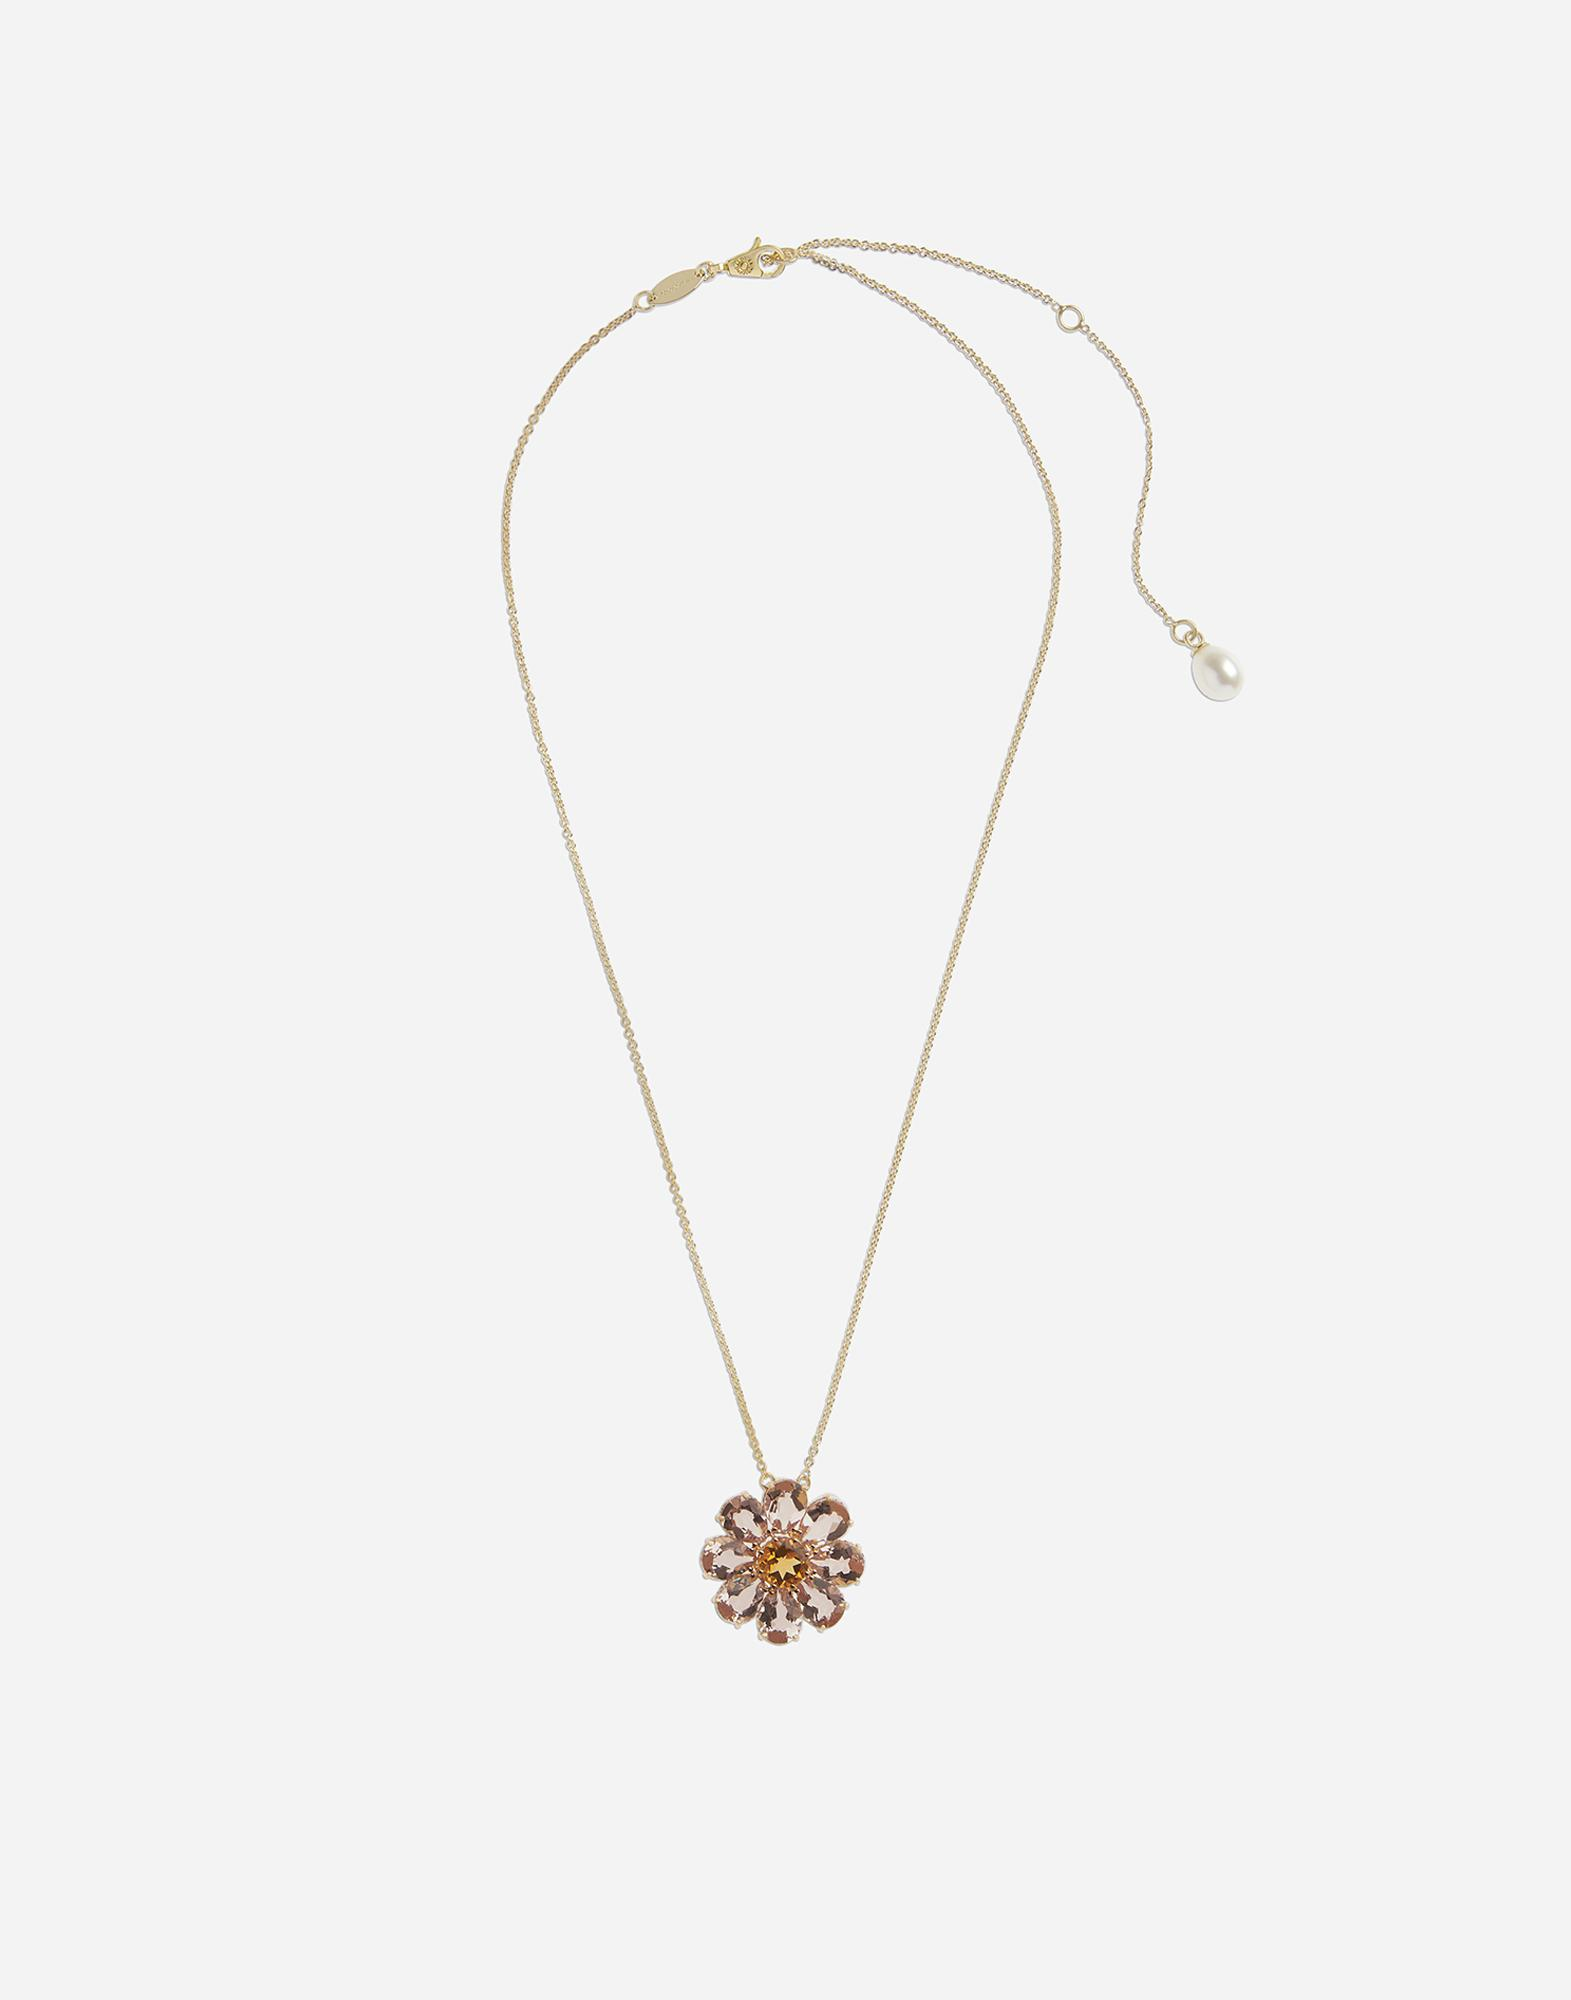 Necklace with red gold flower pendant